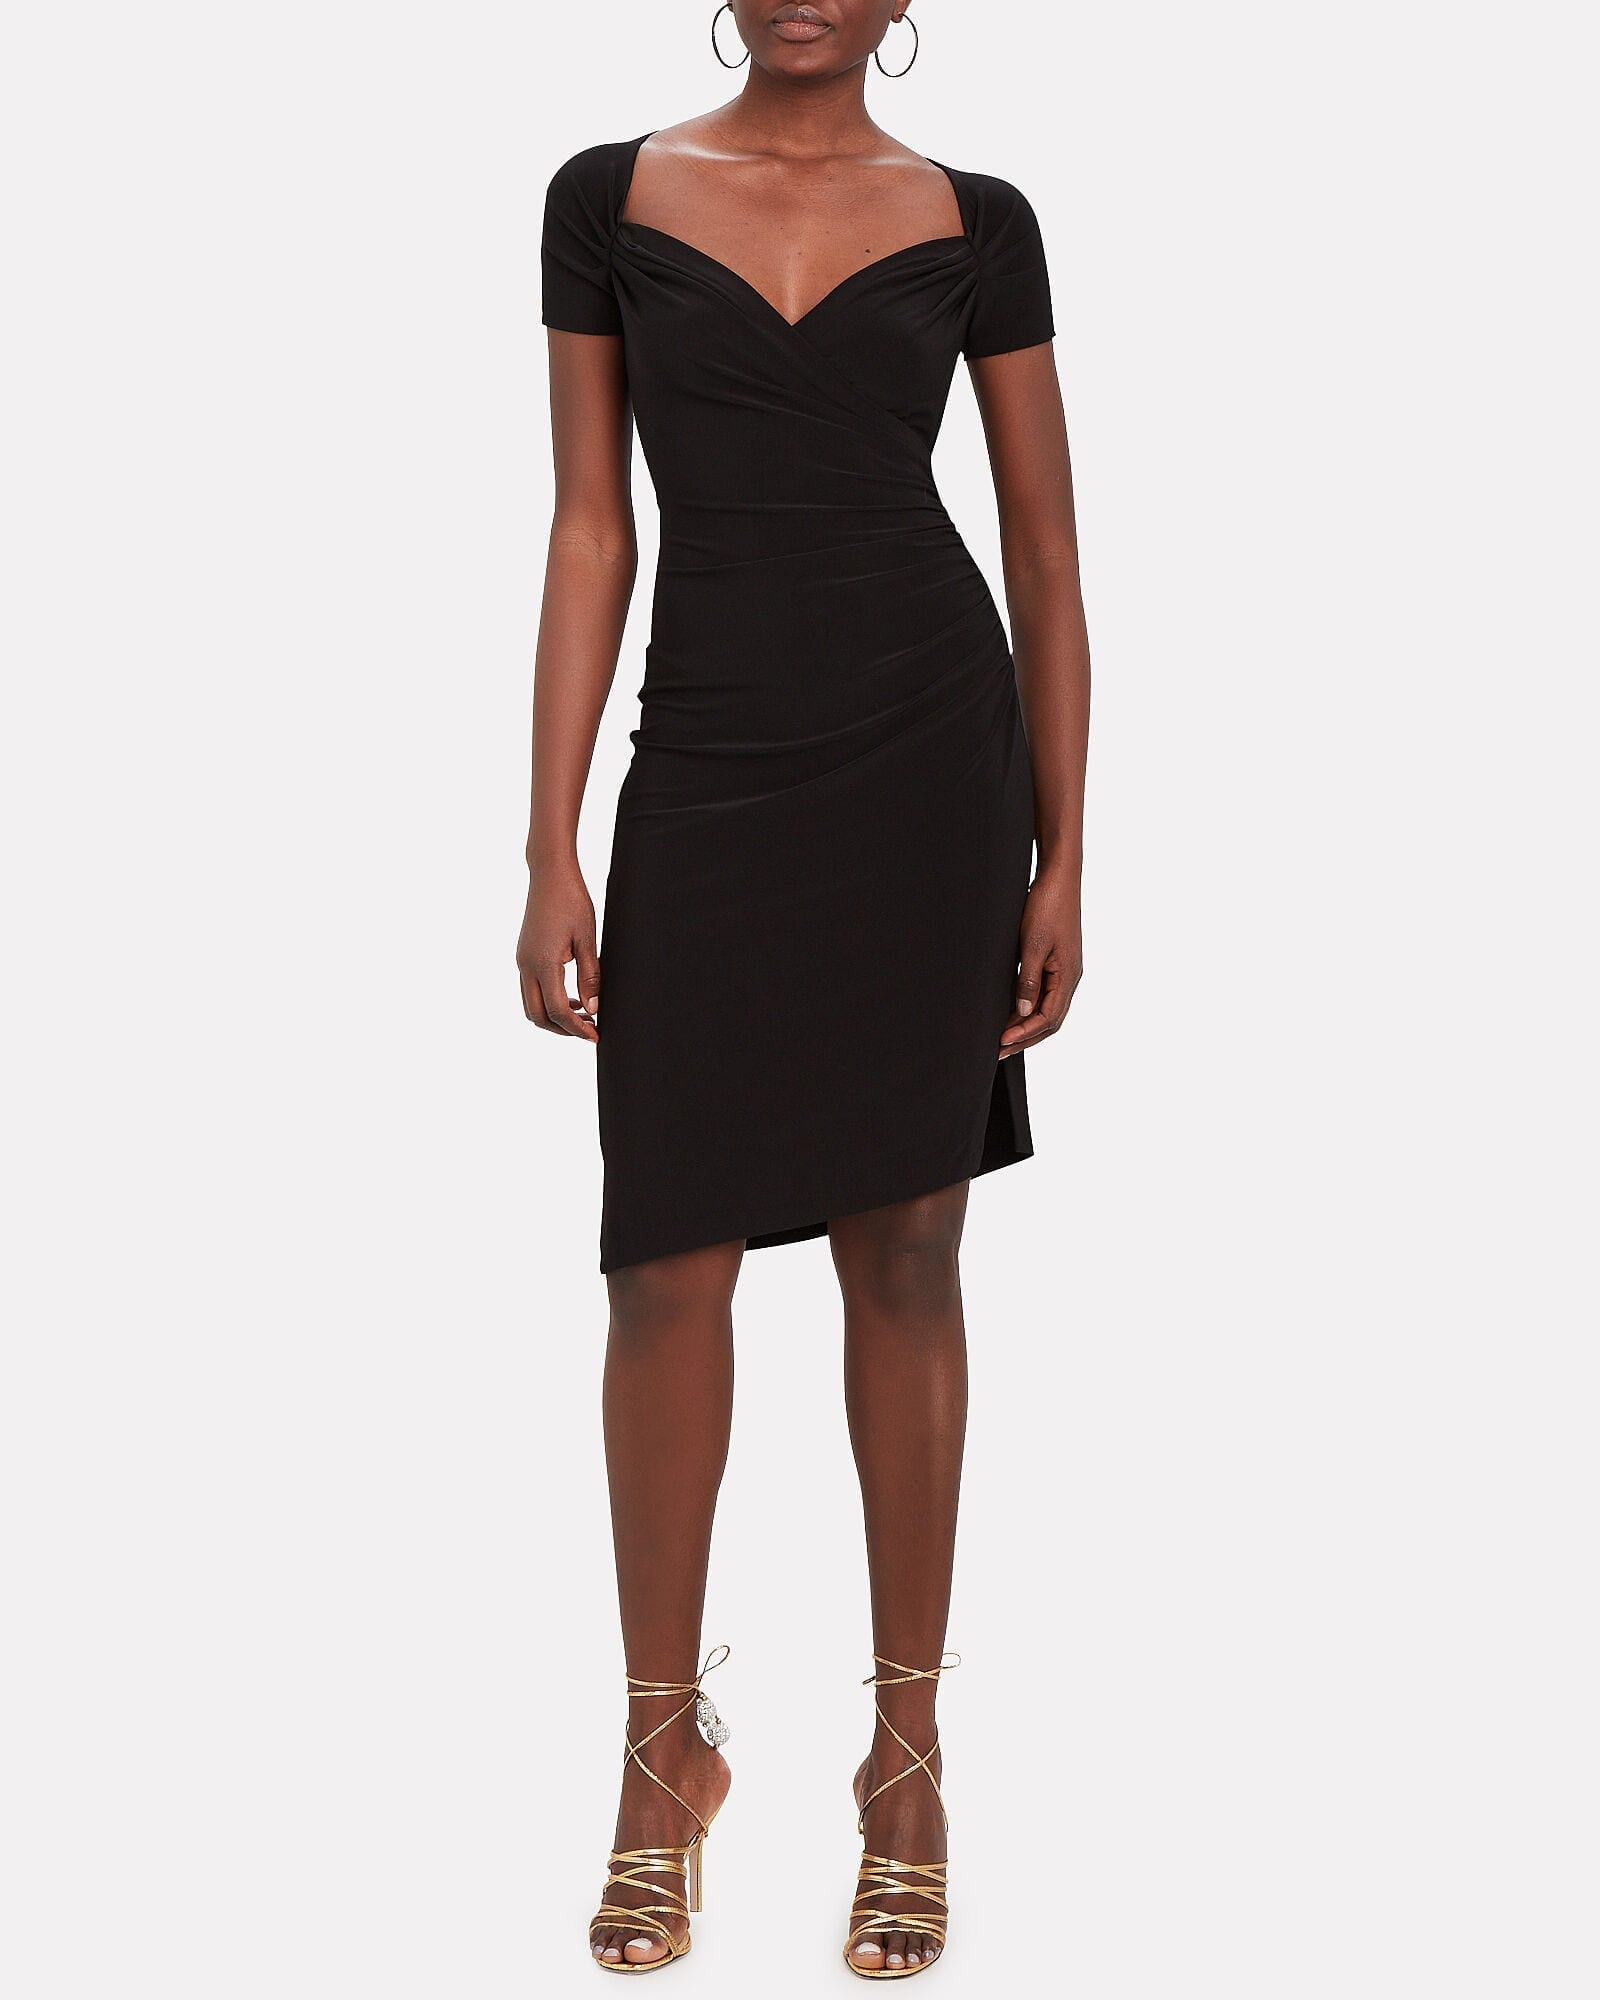 NORMA KAMALI Sweetheart Side Draped Dress